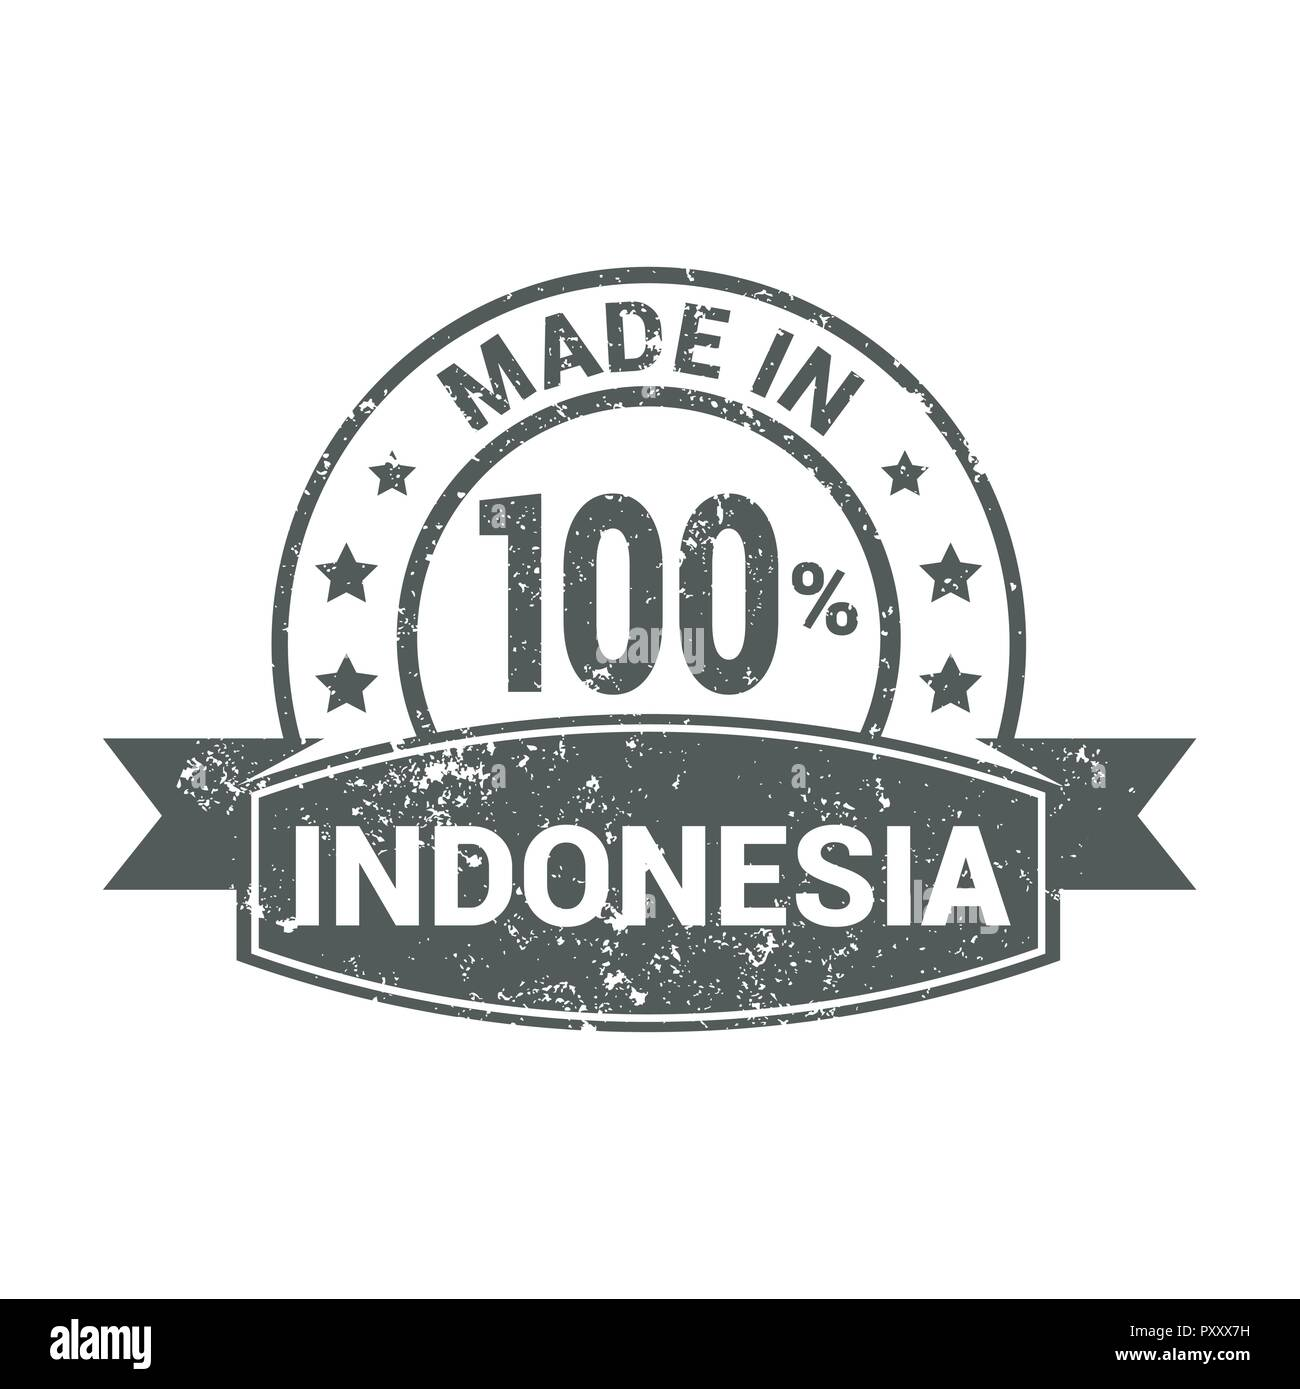 Indonesia Vector Vectors Stock Photos 100 Made In Stamp Design Image